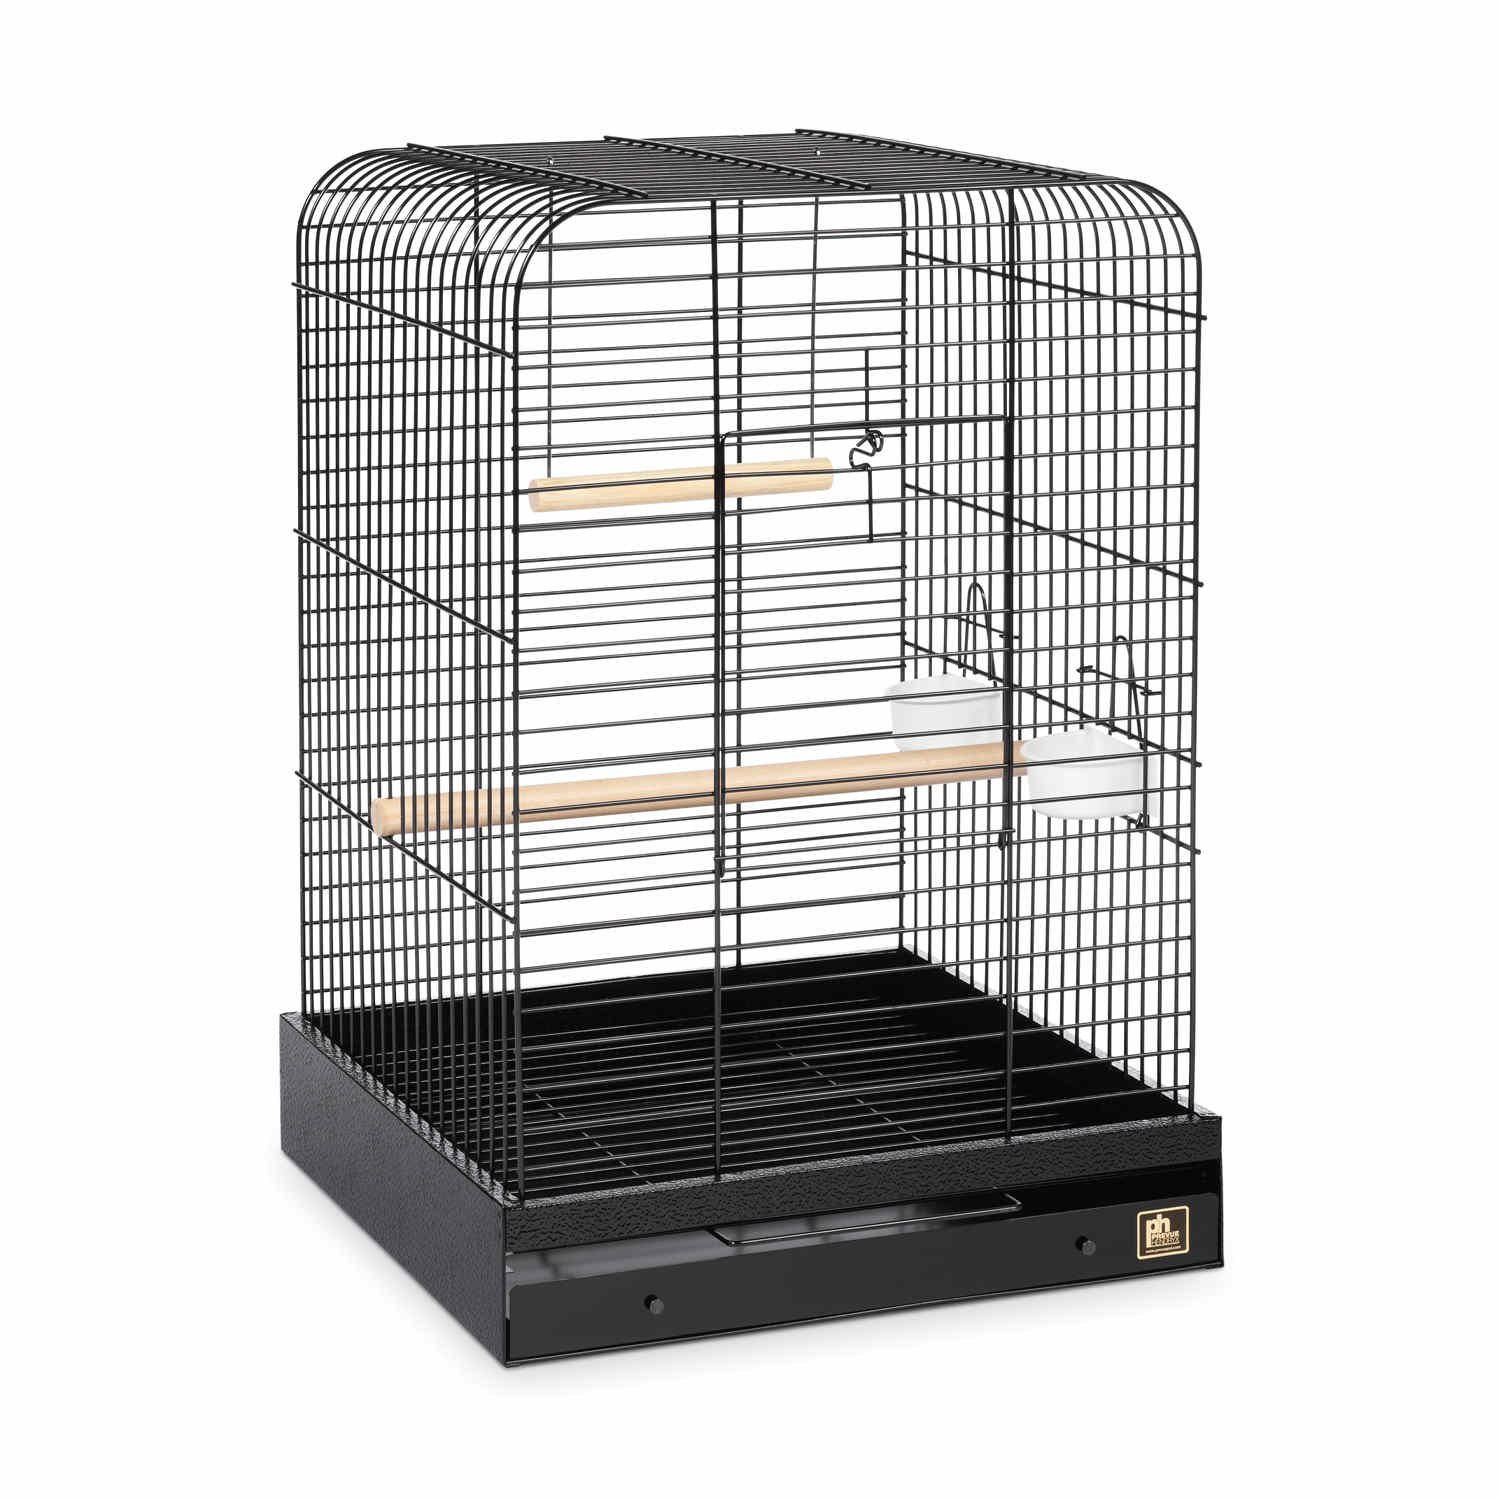 Browse Petco's wide selection of YML bird cages and stands. Come explore, read reviews, & shop YML products for your pet at download-free-carlos.tk